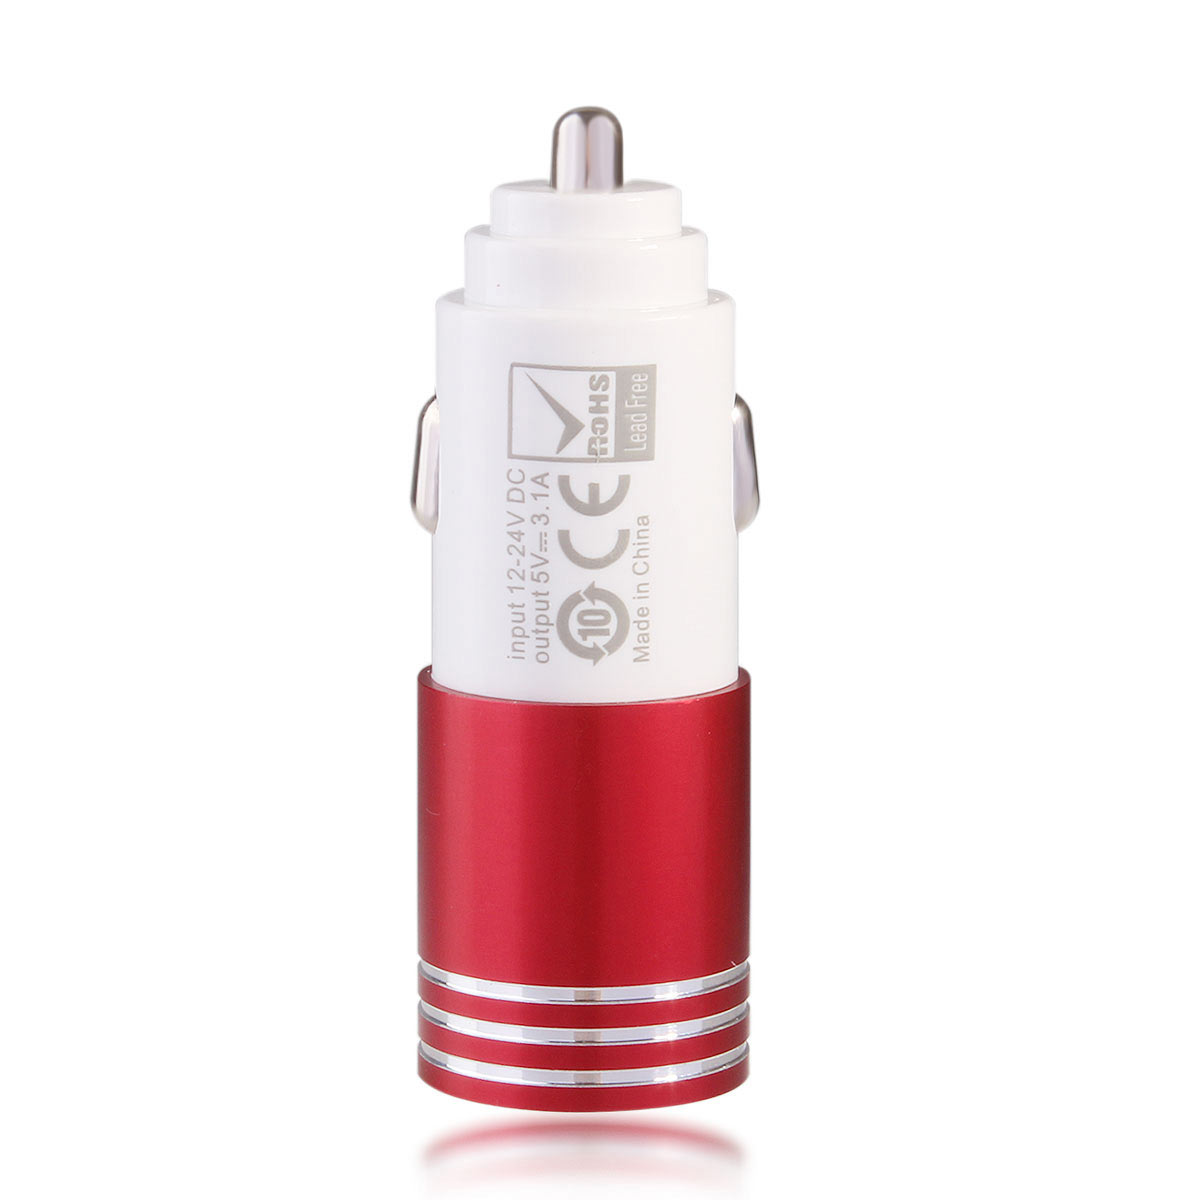 5V 3.1A Dual USB Car Charger for iPad Tablet Phone - Red